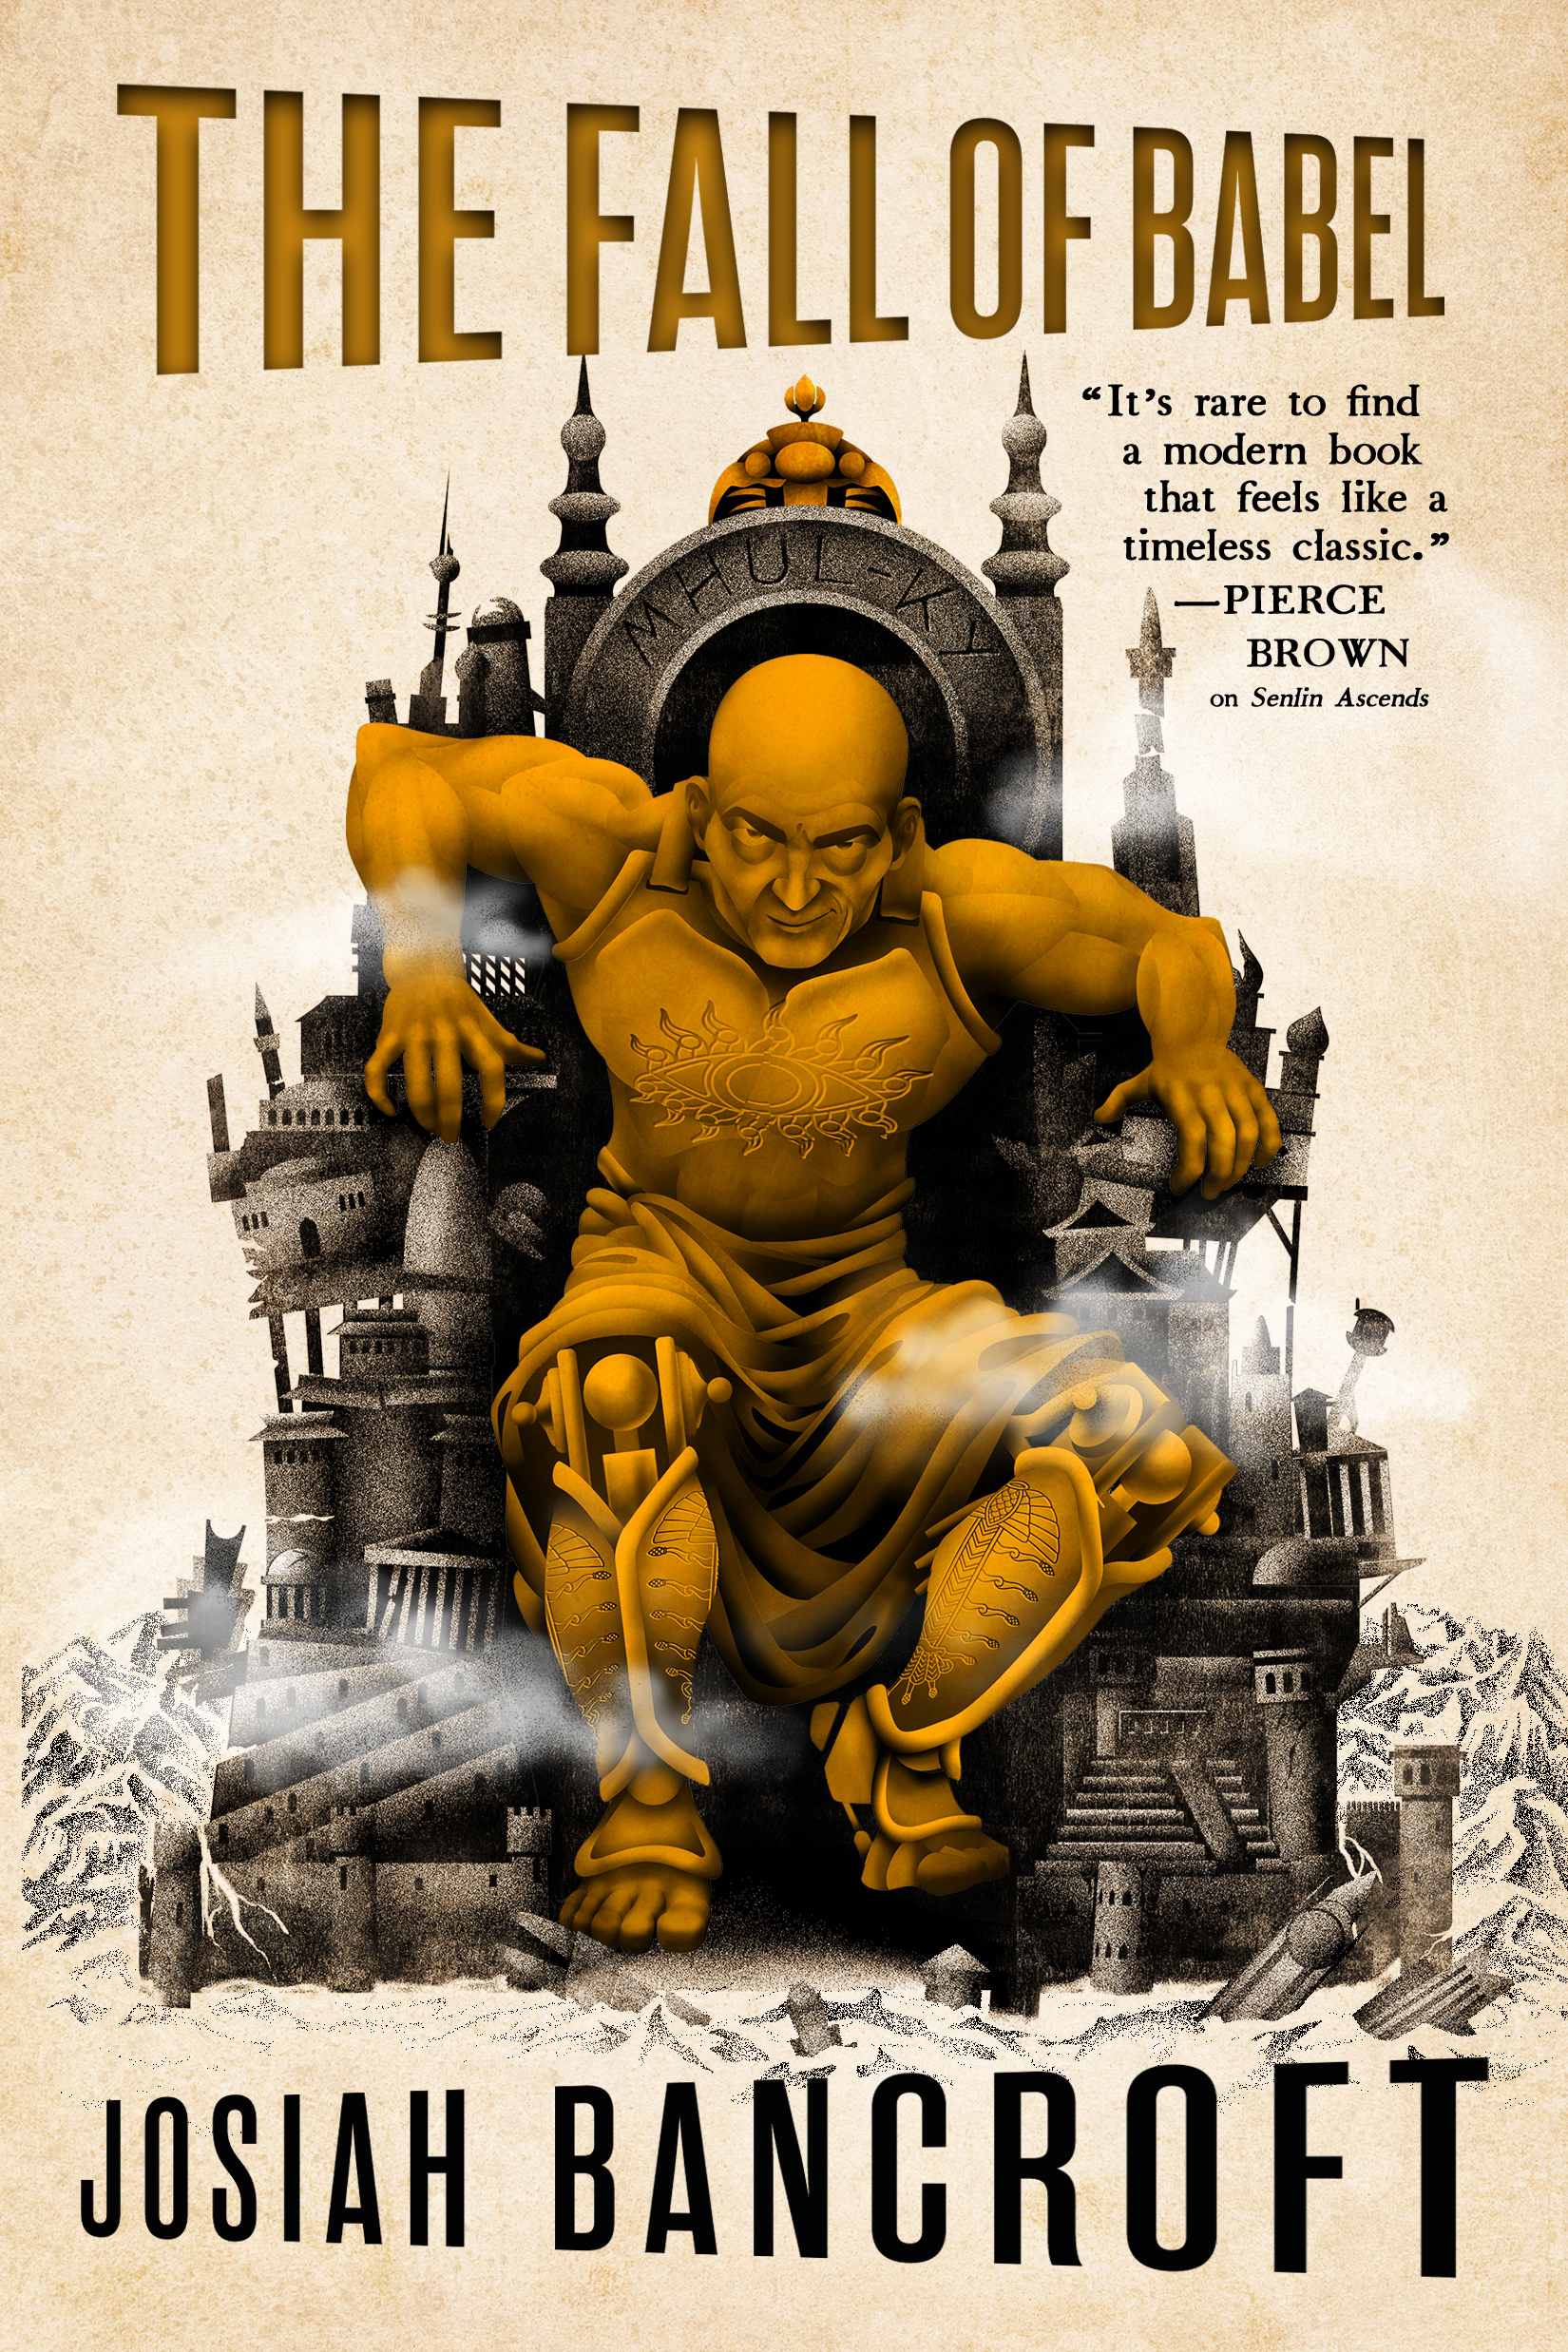 Book cover for The Fall of Babel by Josiah Bancroft. A golden figure emerges from the a shattering city. Mechanical legs are visible beneath the figure's armor.